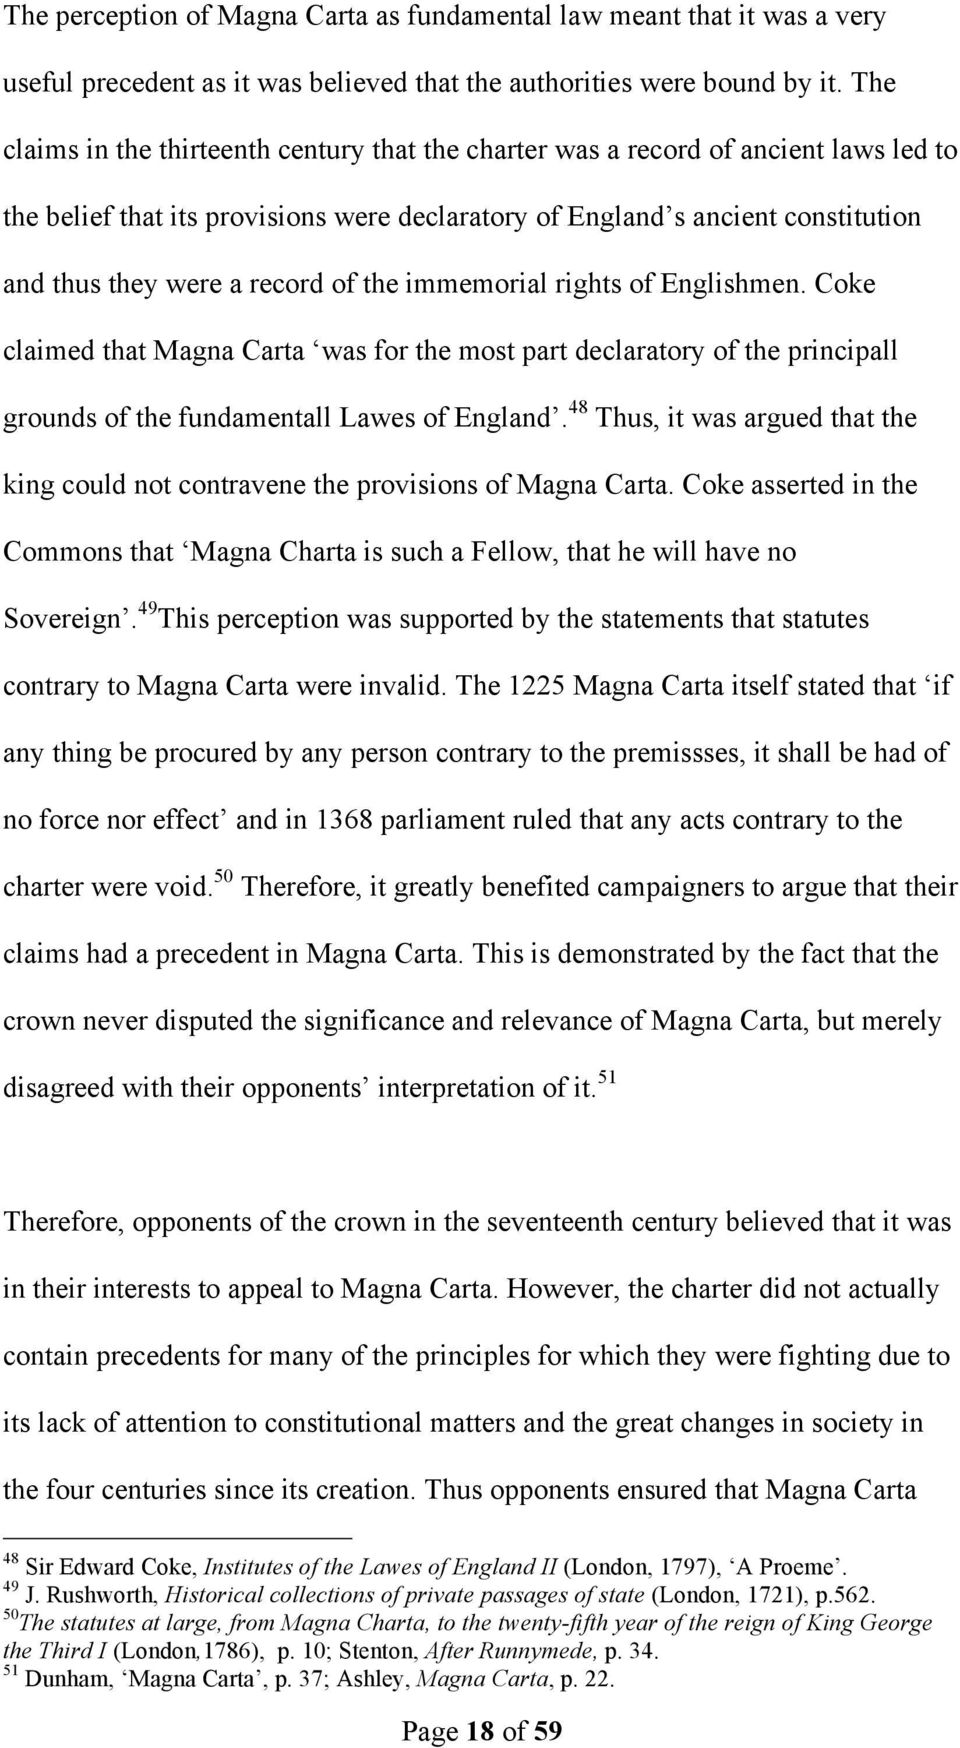 of the immemorial rights of Englishmen. Coke claimed that Magna Carta was for the most part declaratory of the principall grounds of the fundamentall Lawes of England.